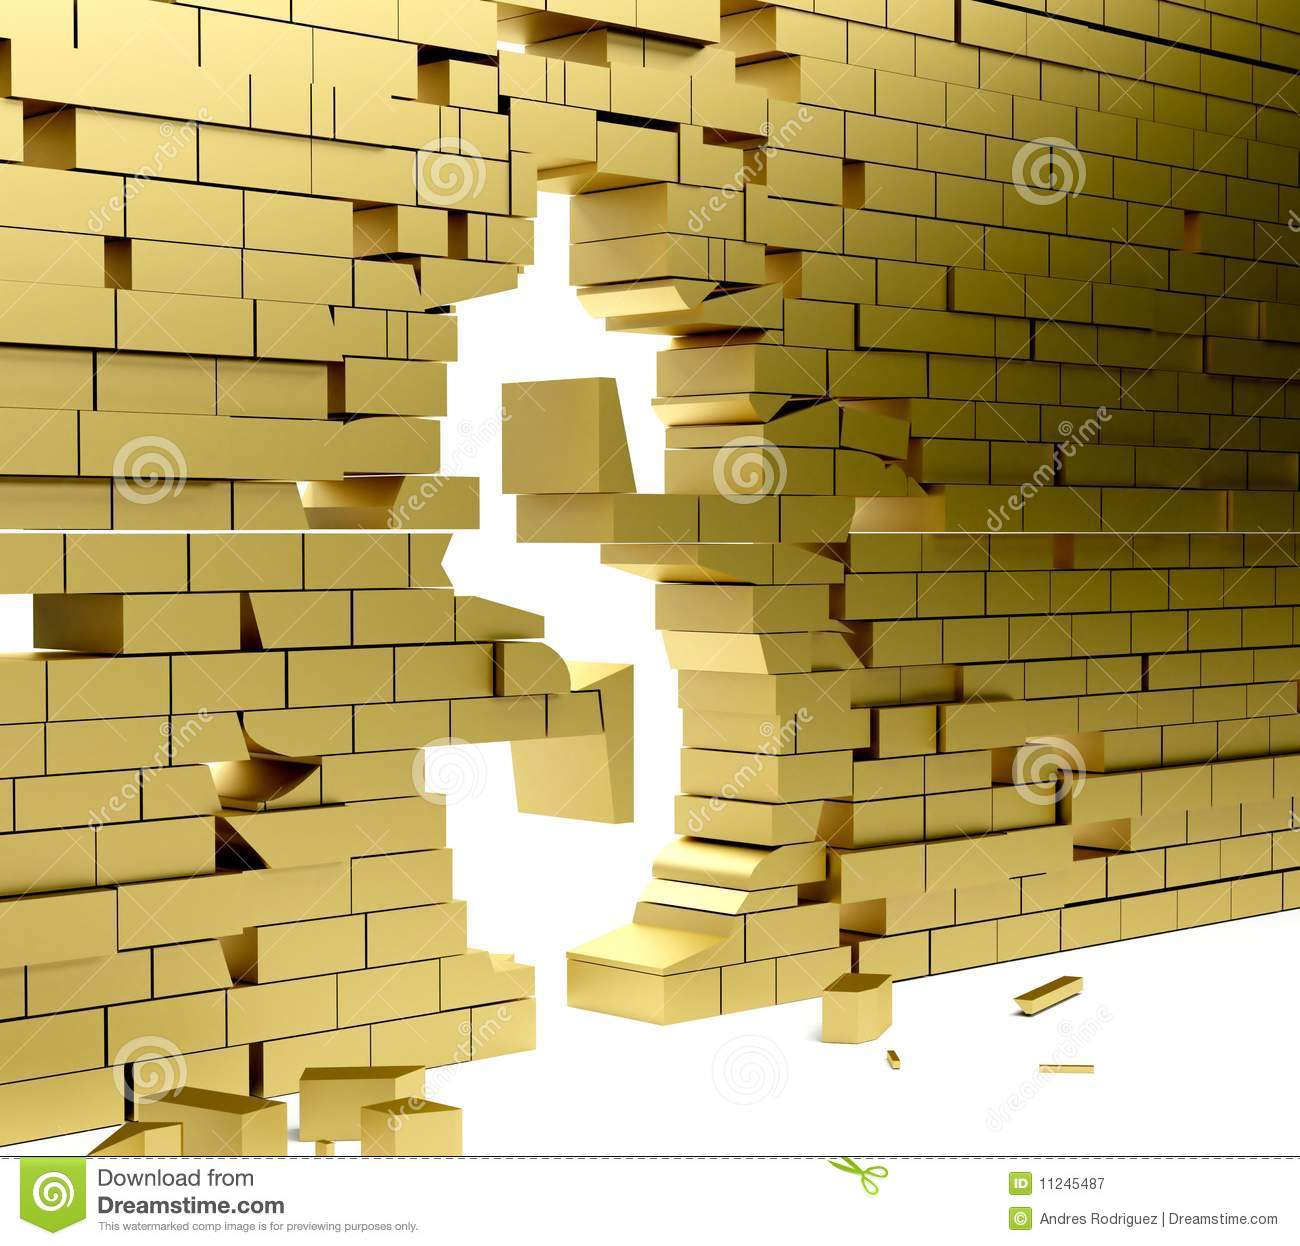 Collapsing wall making a | Clipart Panda - Free Clipart Images